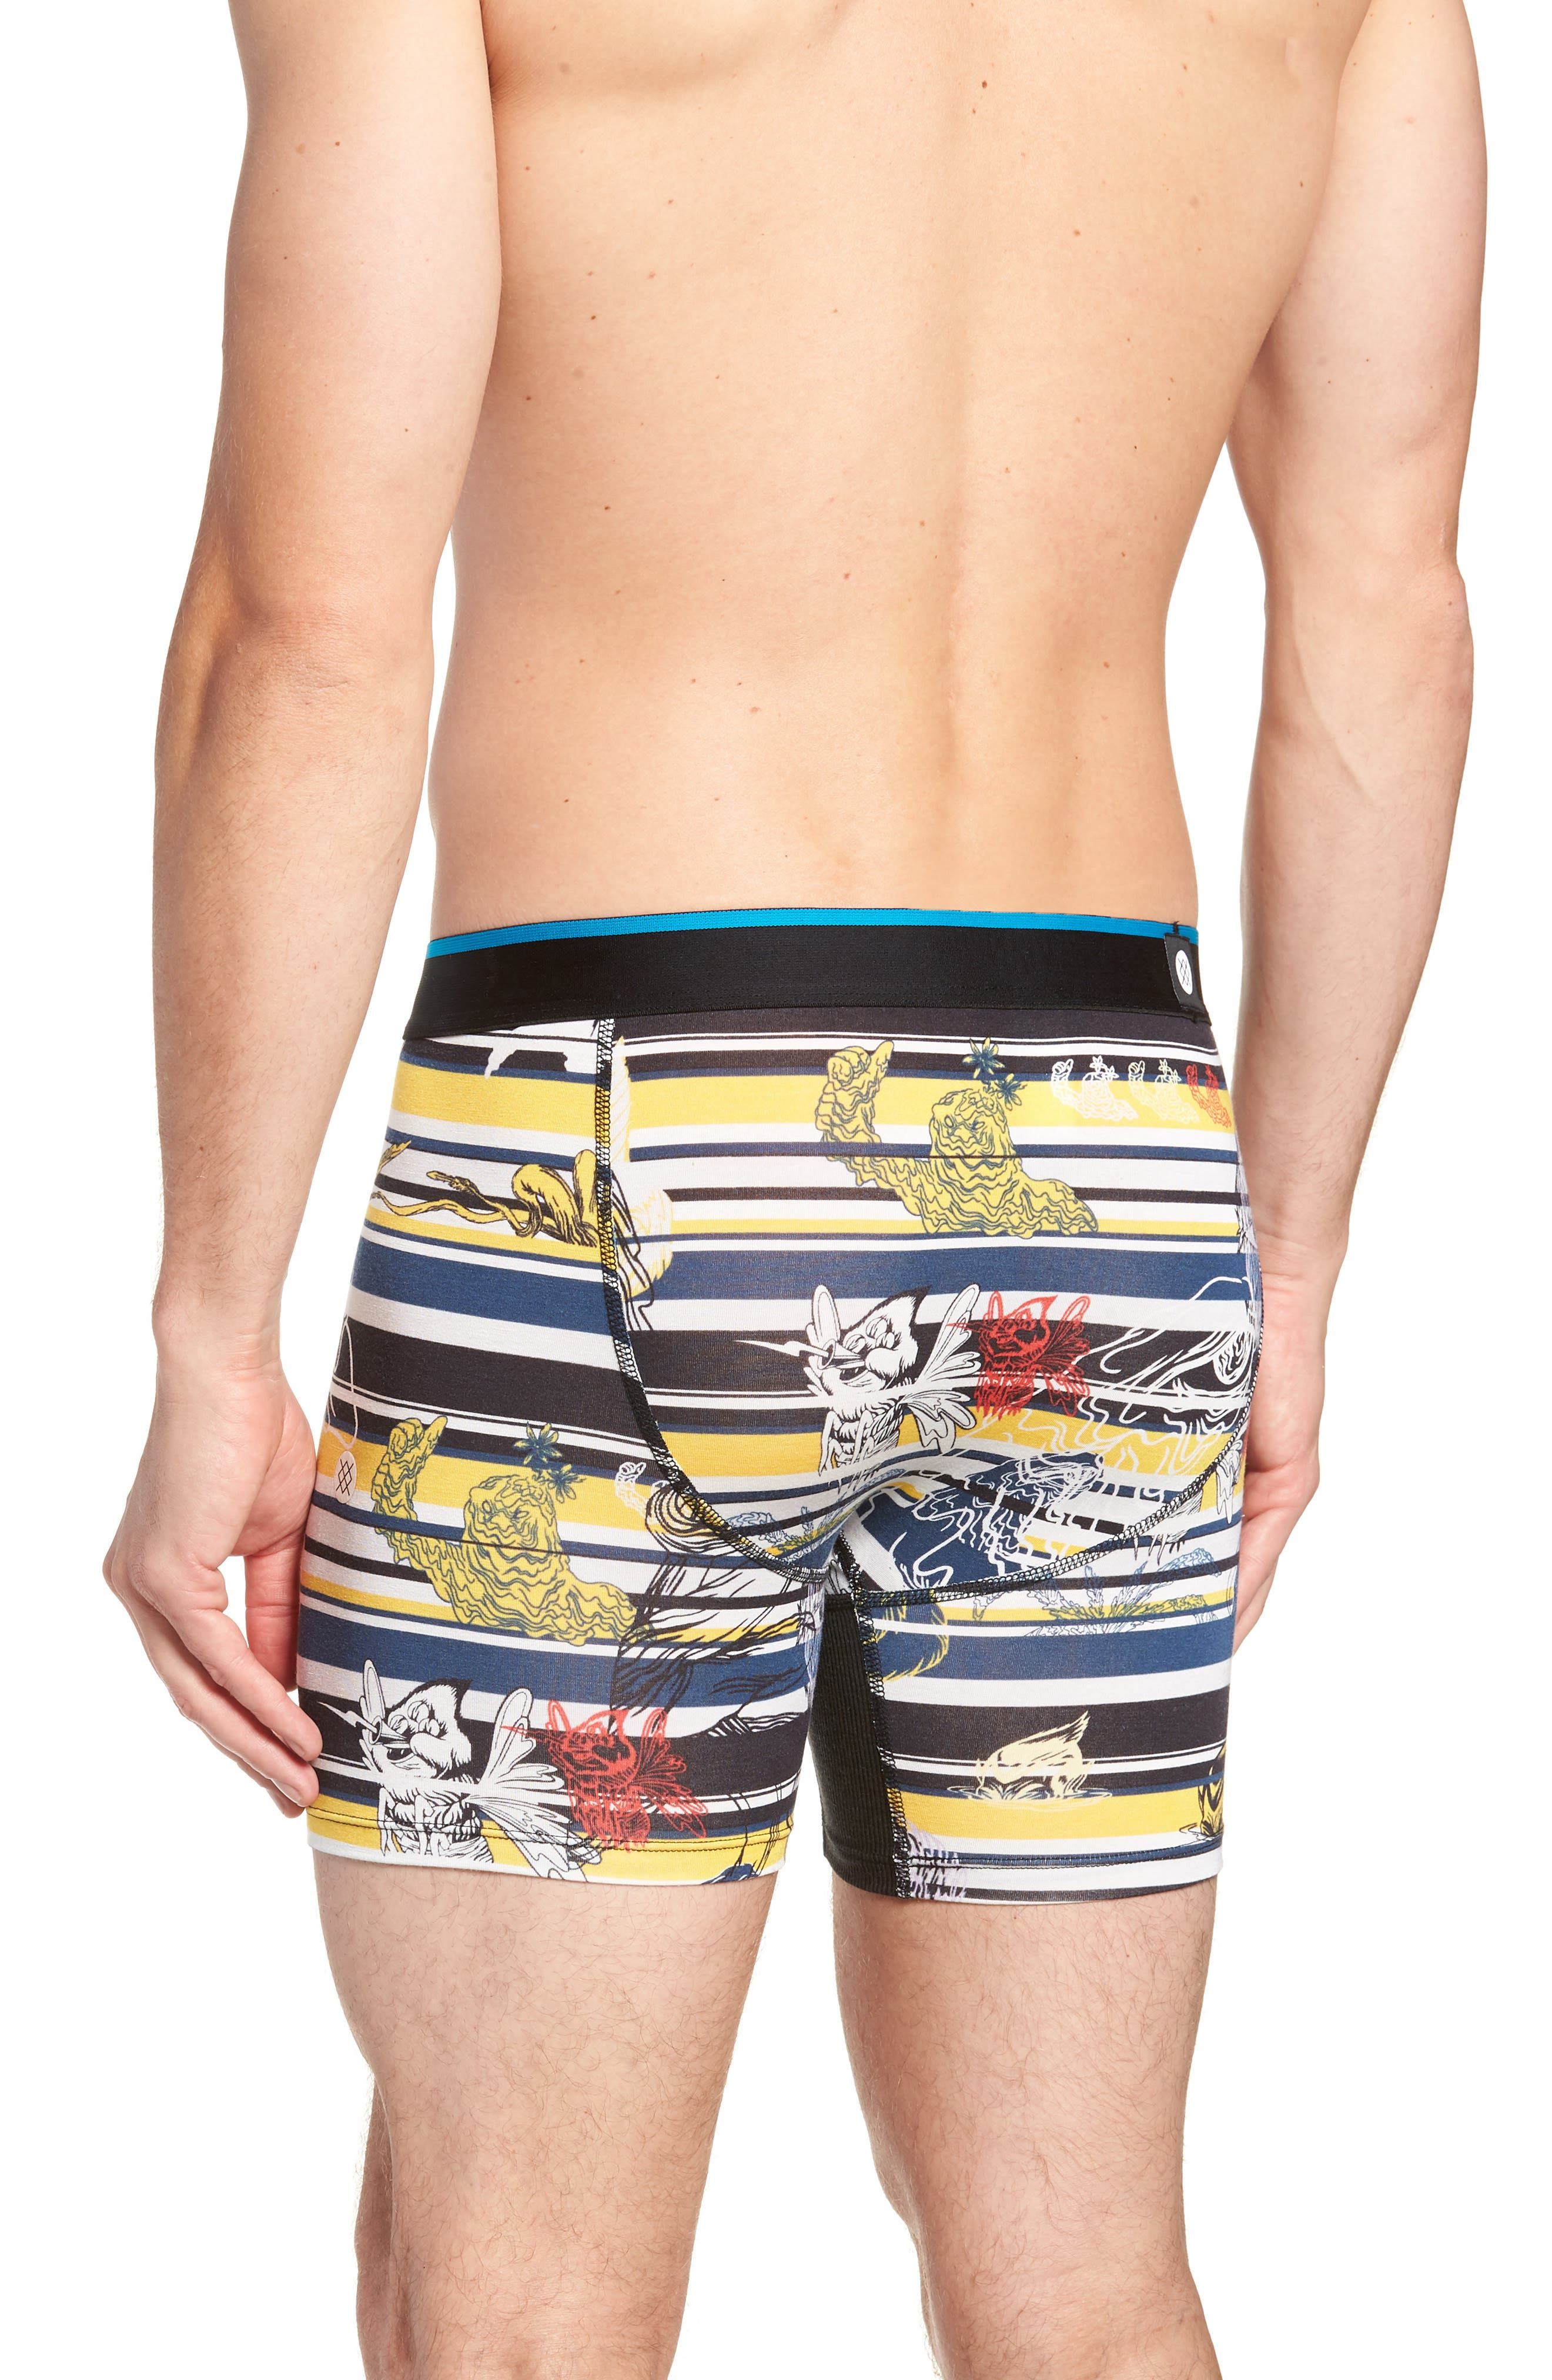 New Mythology Boxer Briefs,                             Alternate thumbnail 2, color,                             YELLOW